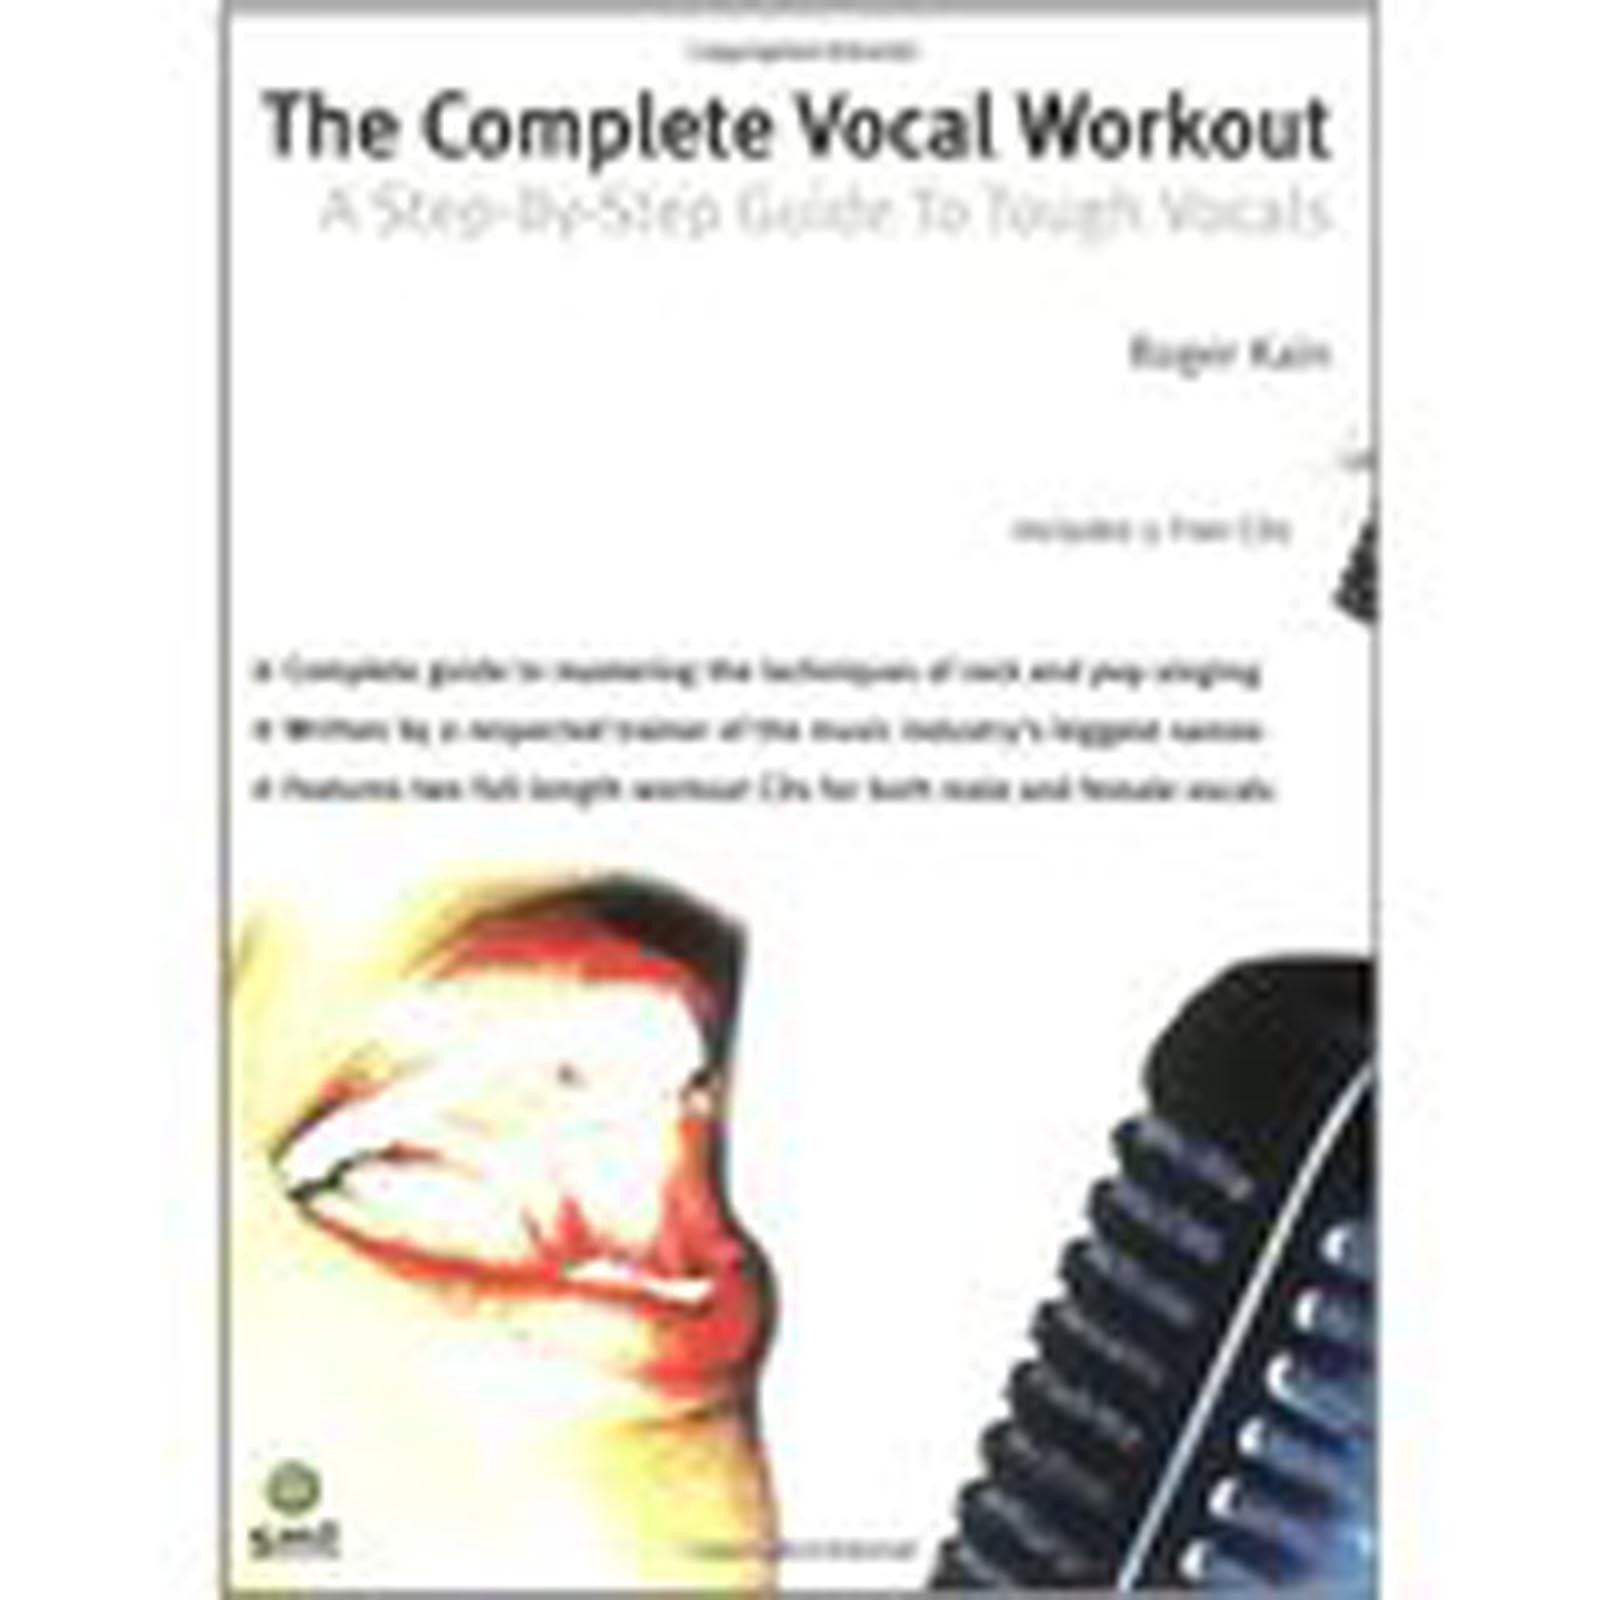 The Complete Vocal Workout A Step-by-step Guide Tough Vocals Book CD Kain S78